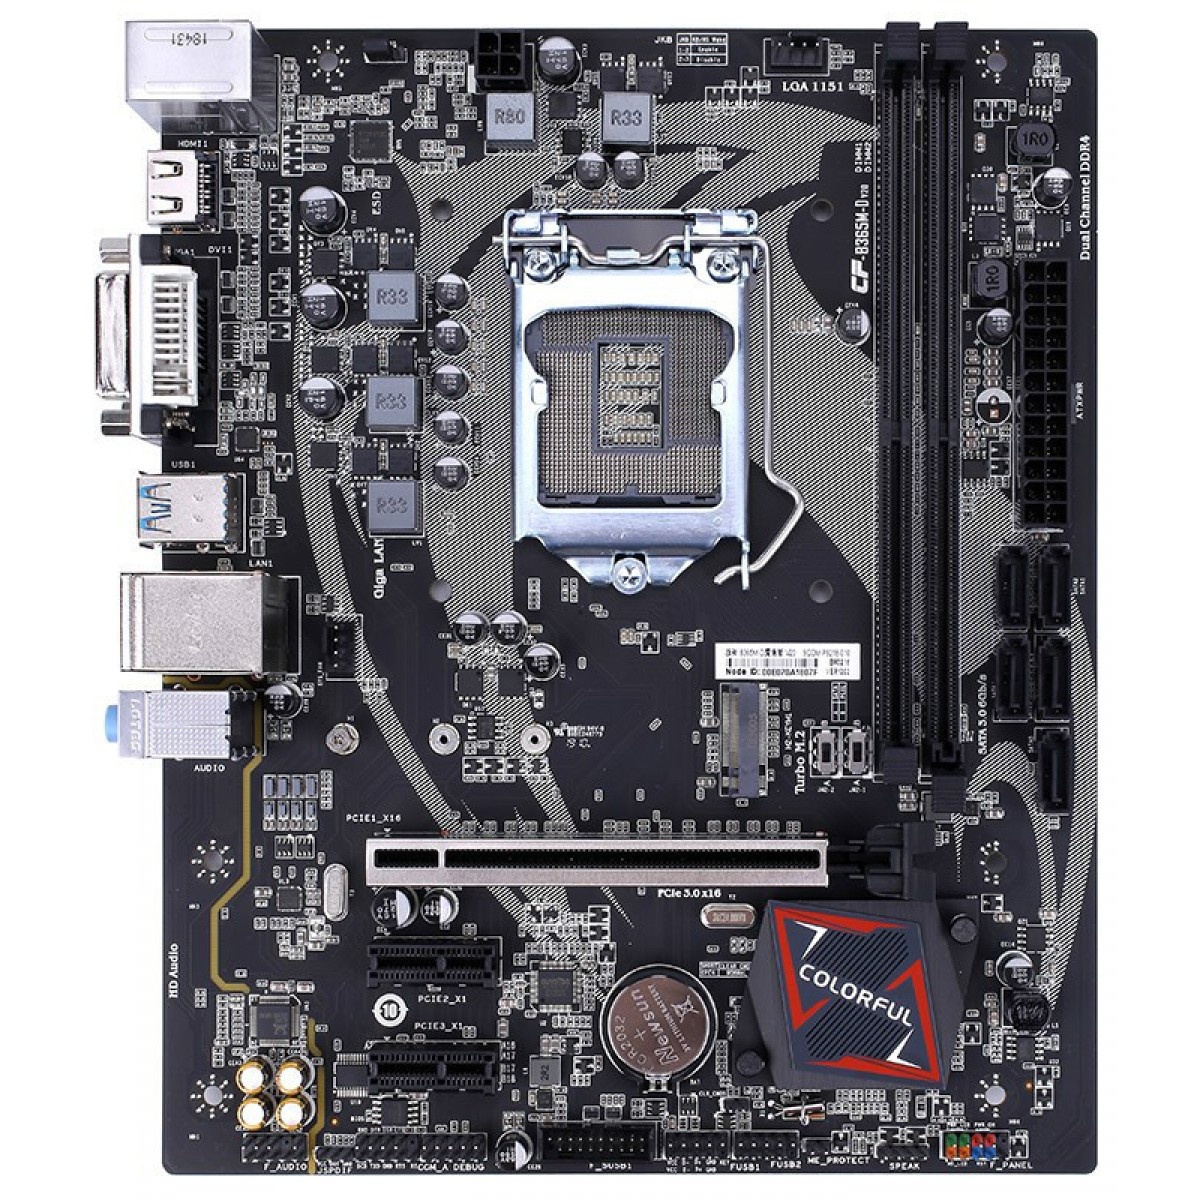 Placa Mãe Colorful BATTLE-AX B365M-D V20, Chipset B365, Intel LGA 1151, mAXT, DDR4, 110510204301